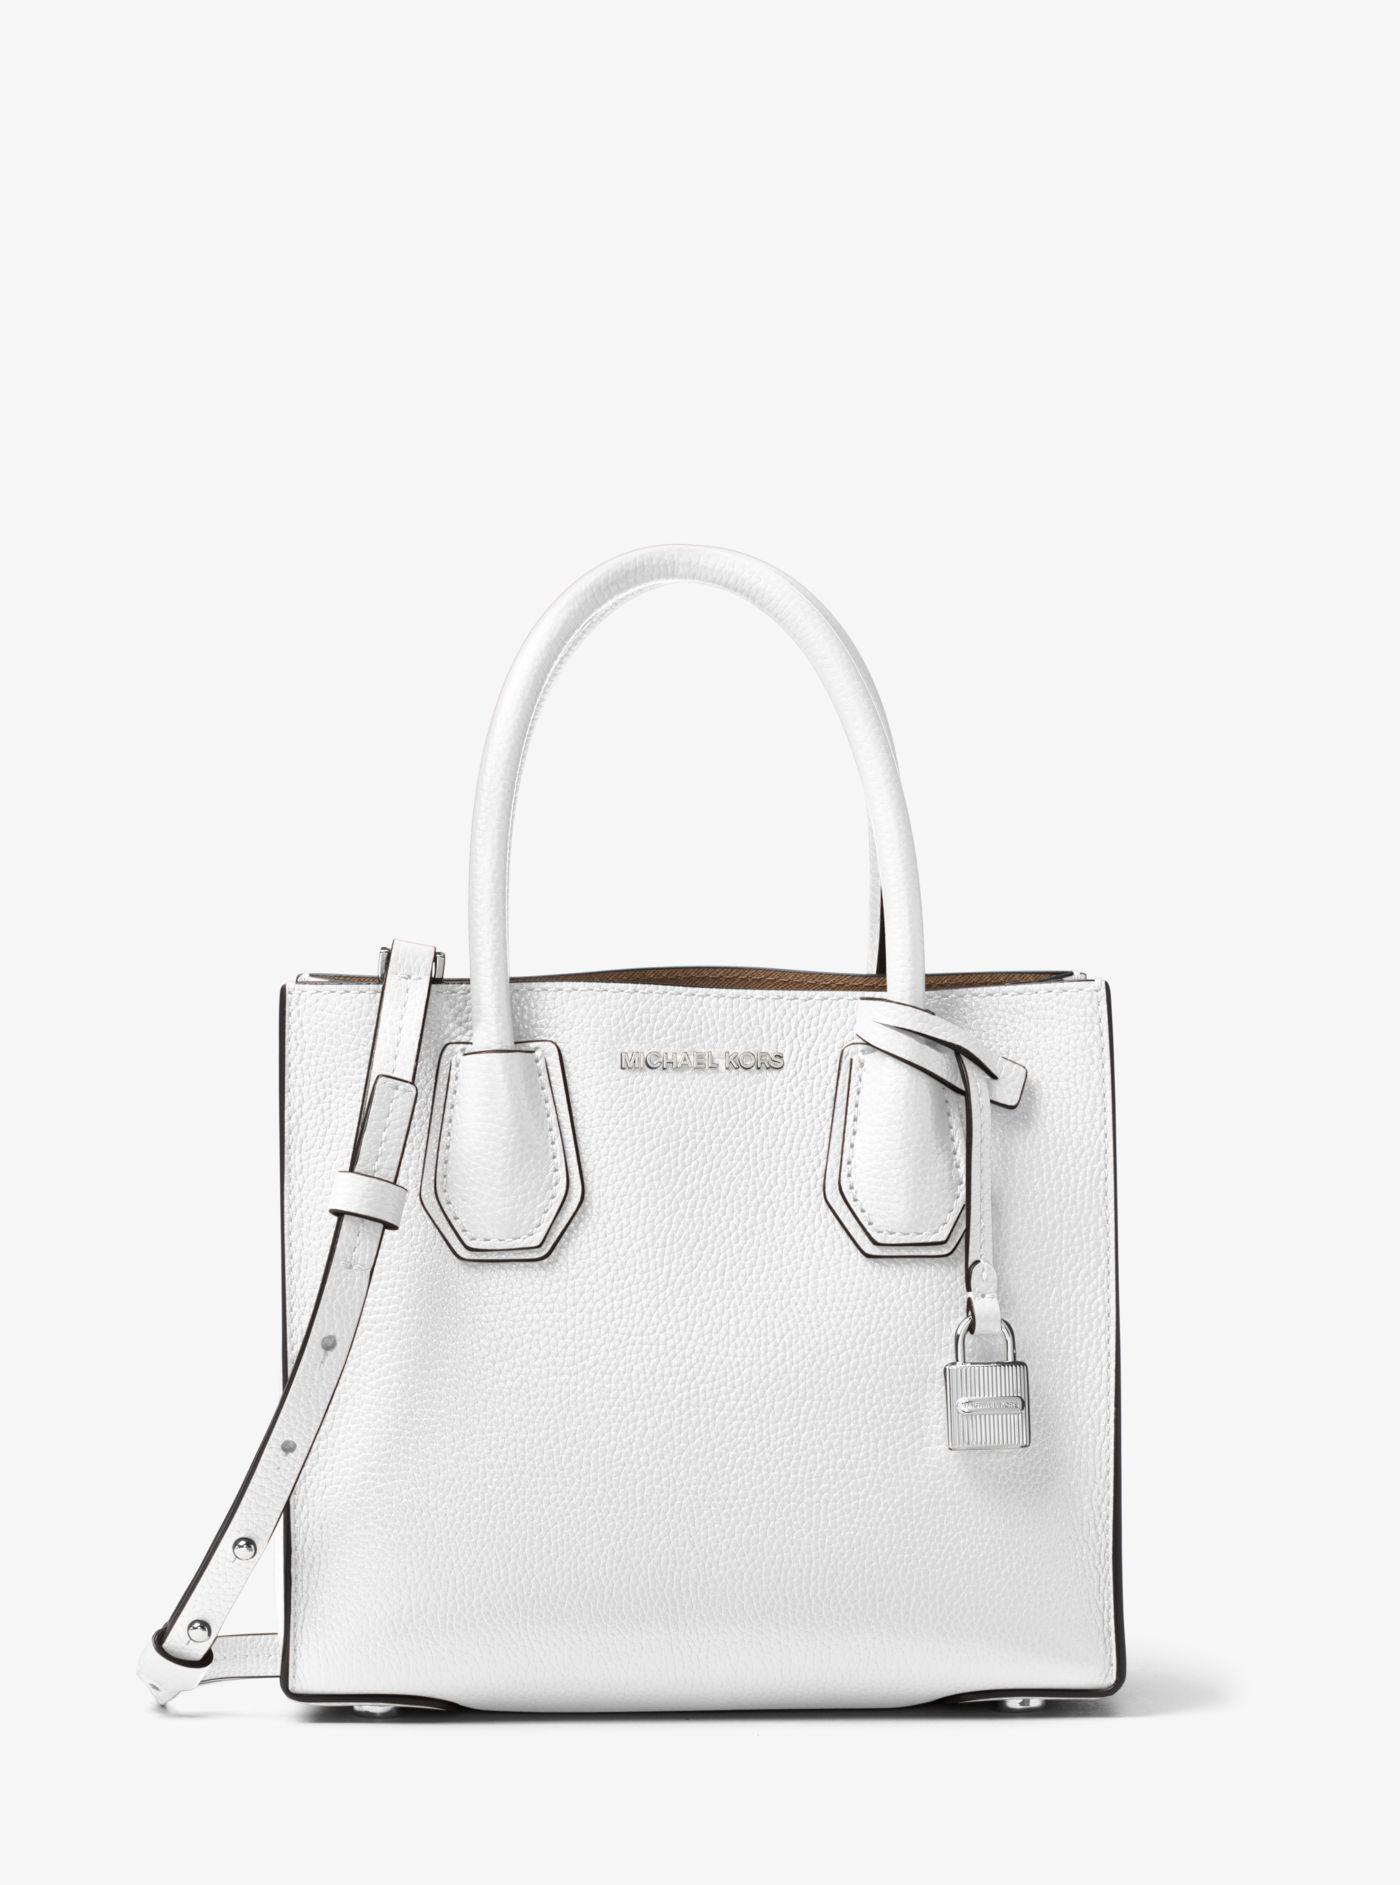 7d7e2ecd706b ... large convertible tote sku8902714 7df91 ed1cb  coupon code for lyst  michael kors michael mercer medium bonded leather crossbody cdac5 8915d